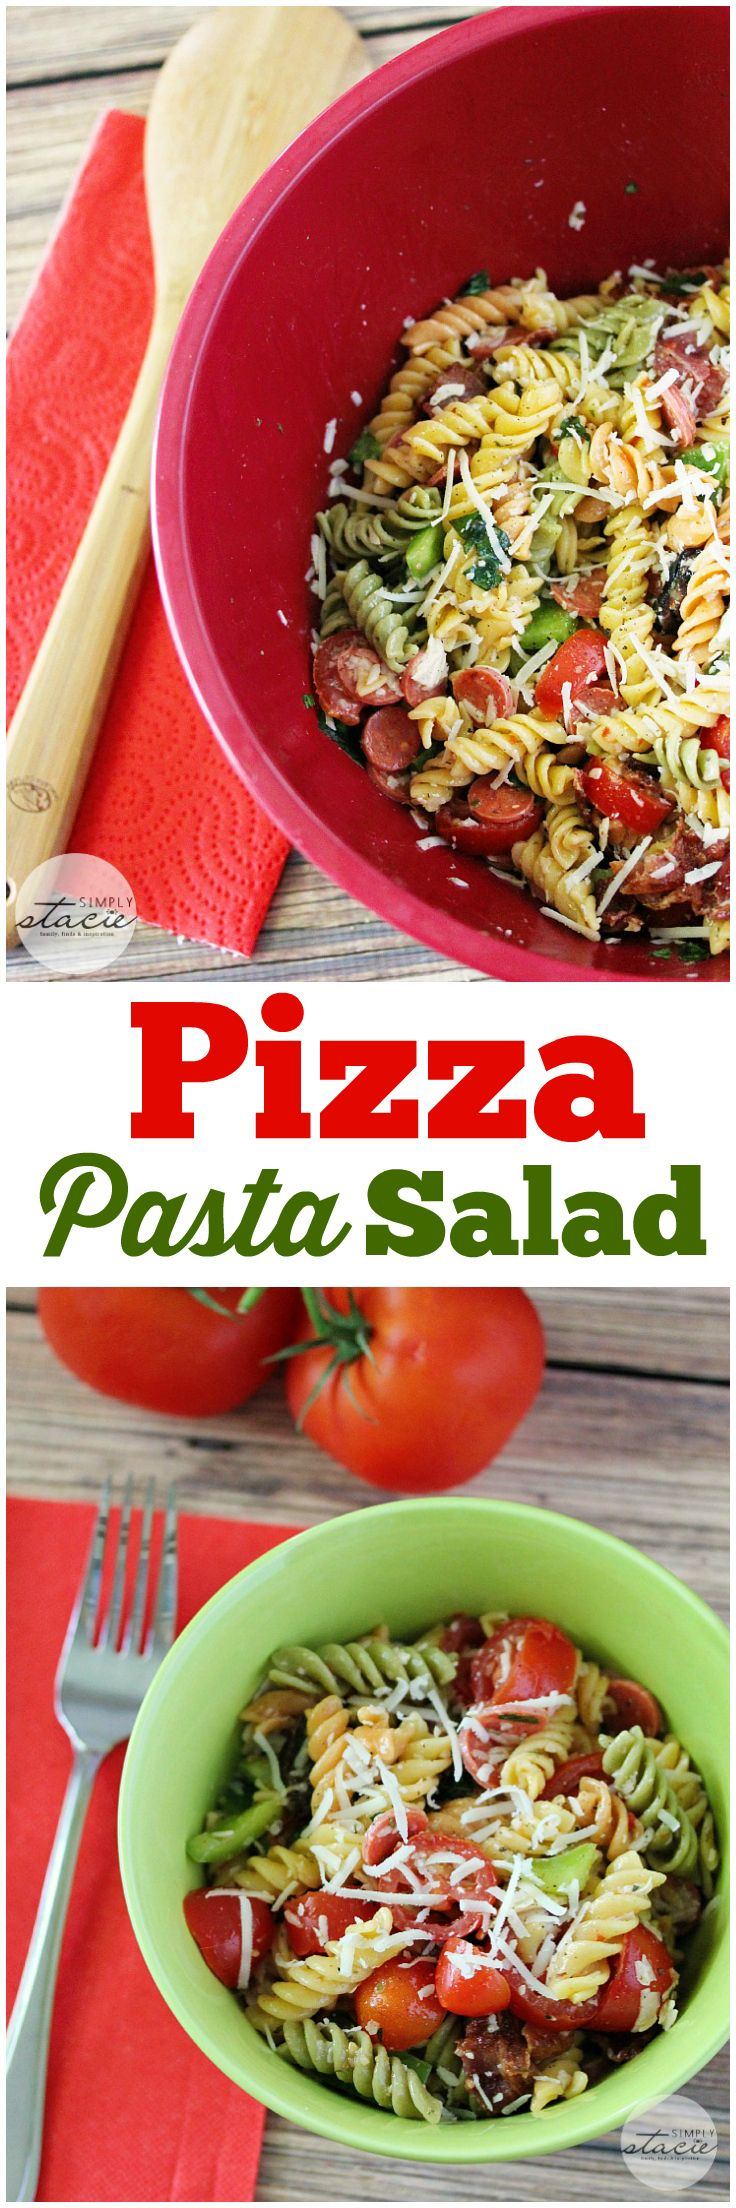 Pizza Pasta Salad - A zesty pasta salad filled with all my fave pizza toppings!